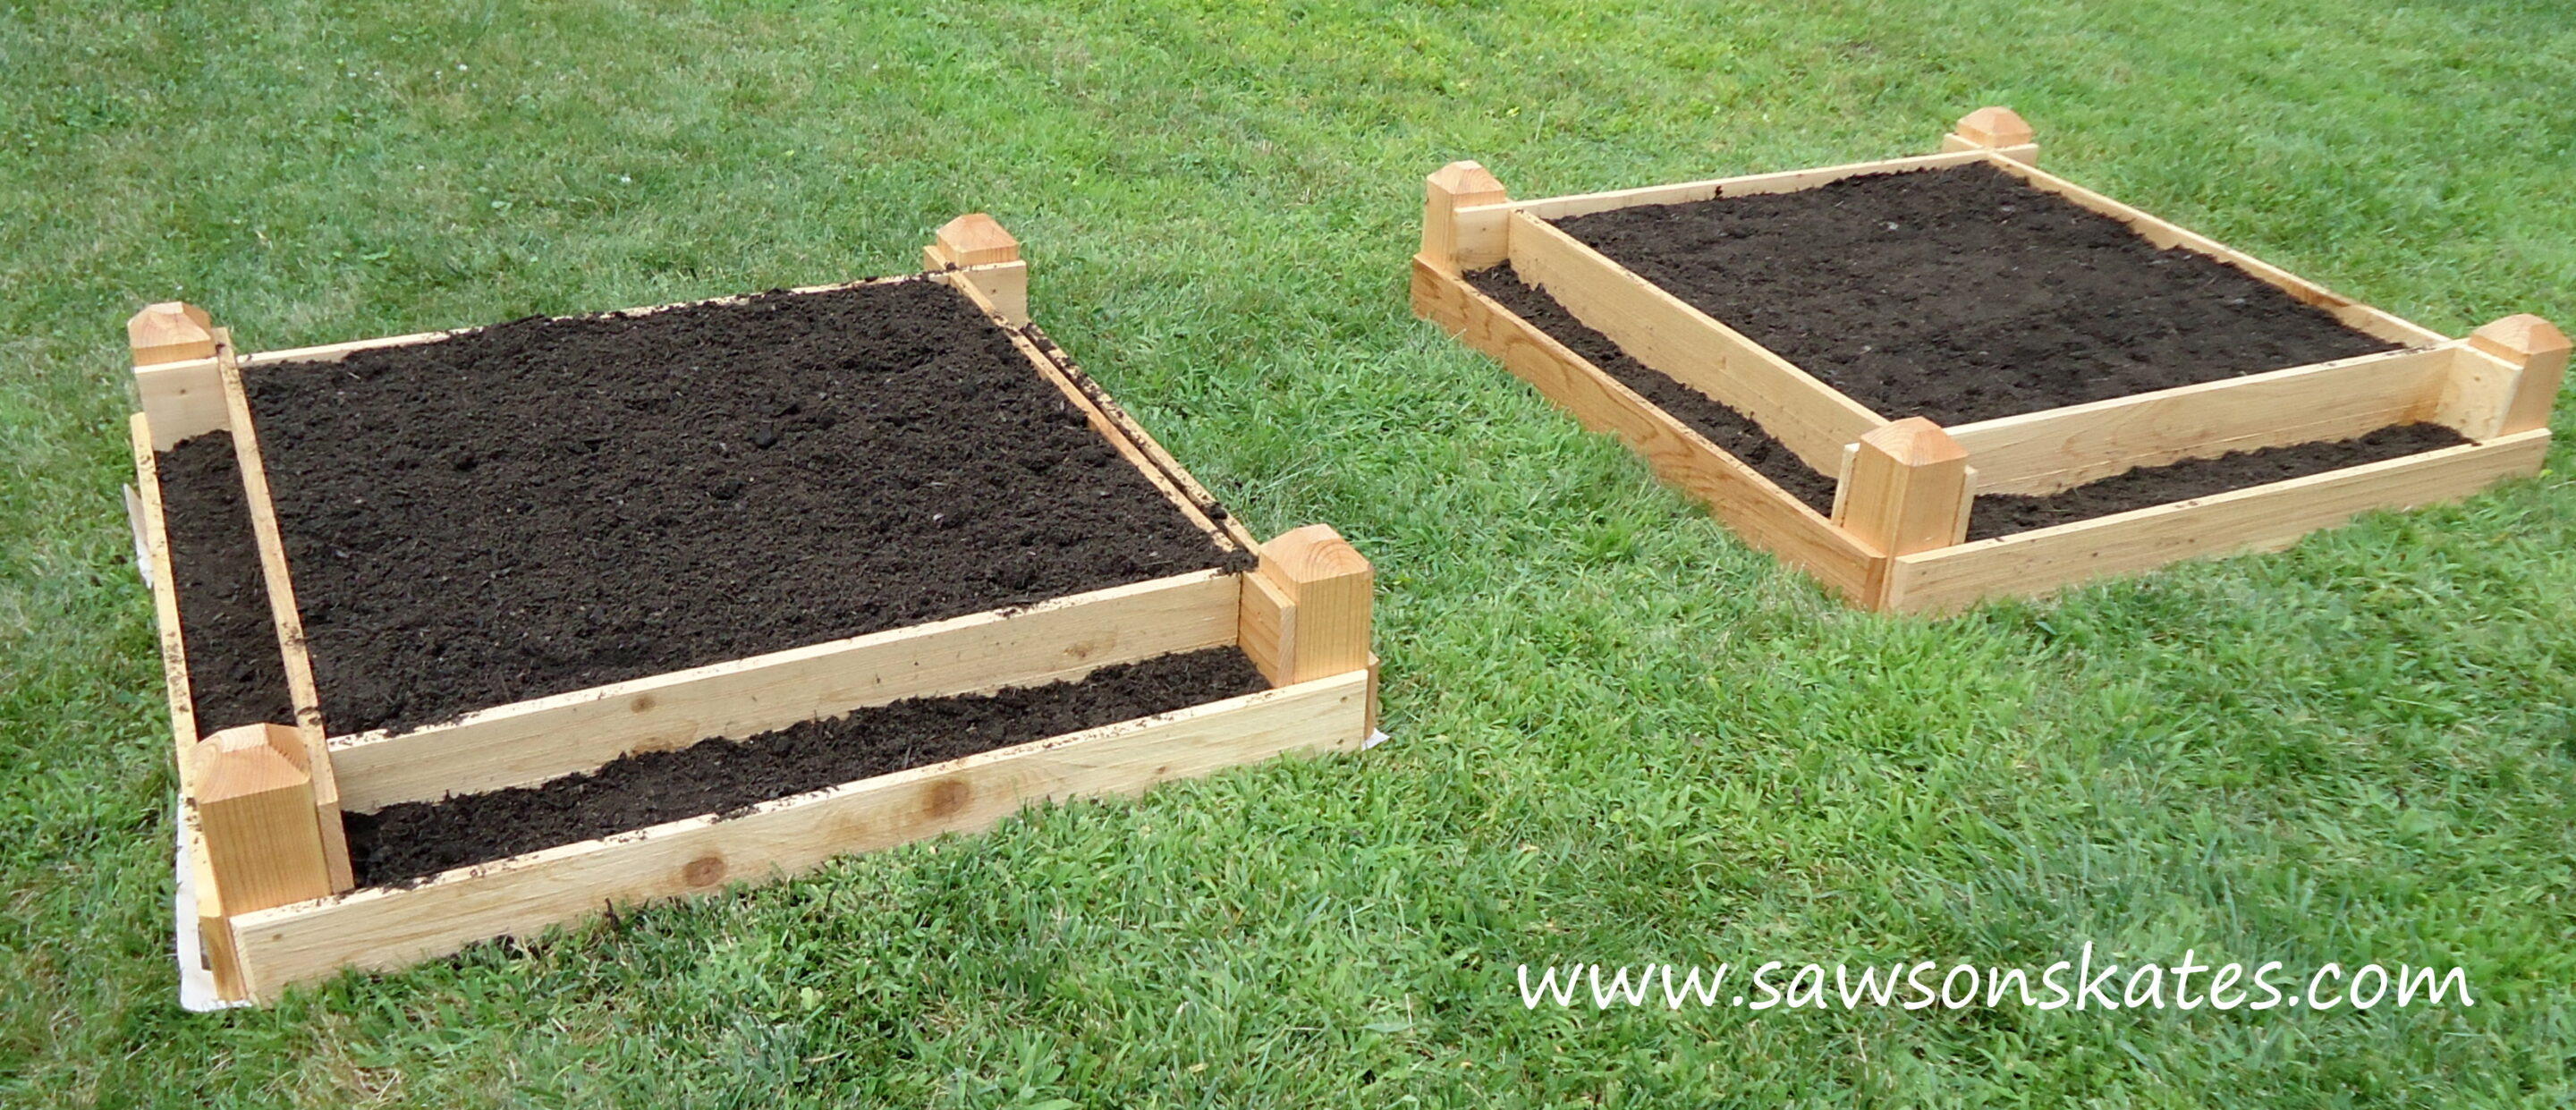 How to make a diy raised garden bed for Making raised garden beds